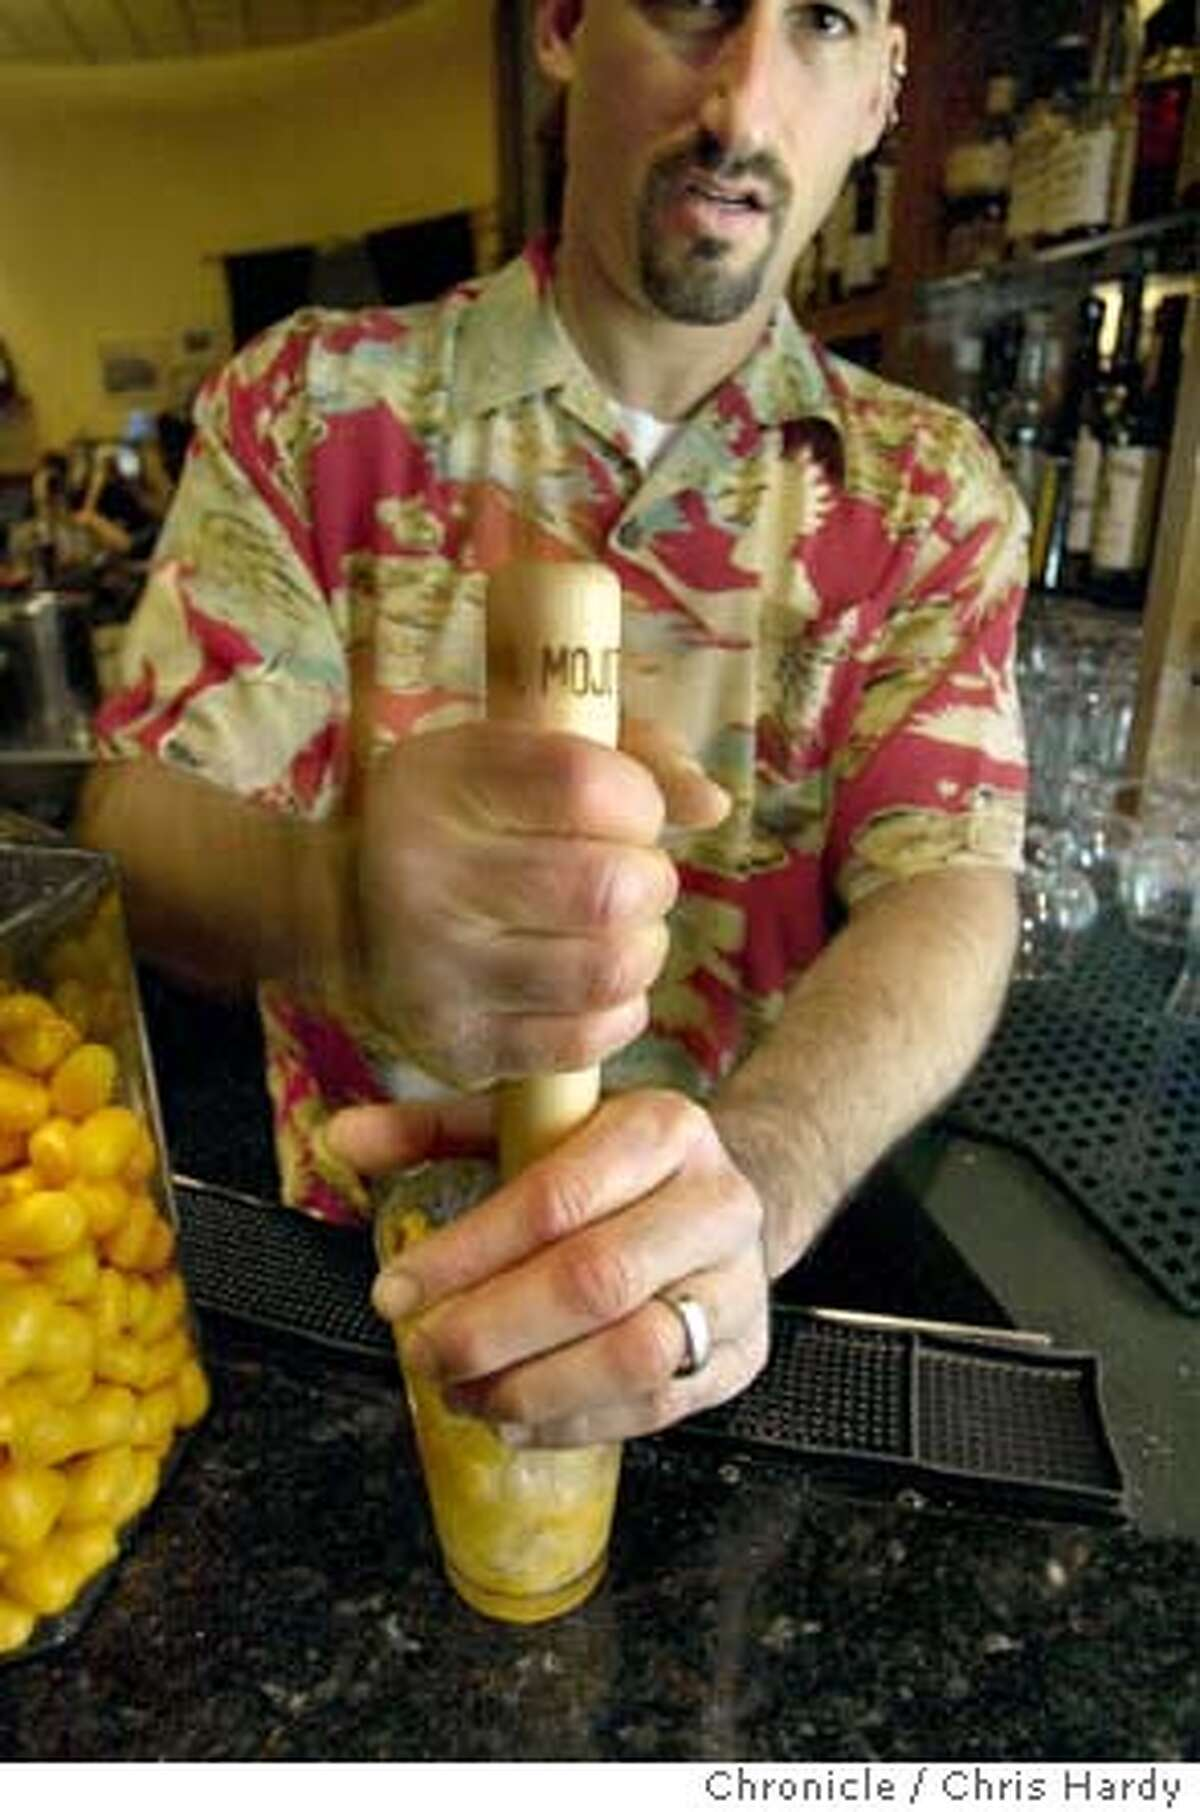 """Enrico's bar manager David Nepove making the Kumquat Caipiroshka """"stick"""" drink - which calls for the ingredients to be muddled together with a wooden muddler, or stick. CHRIS HARDY / The Chronicle"""